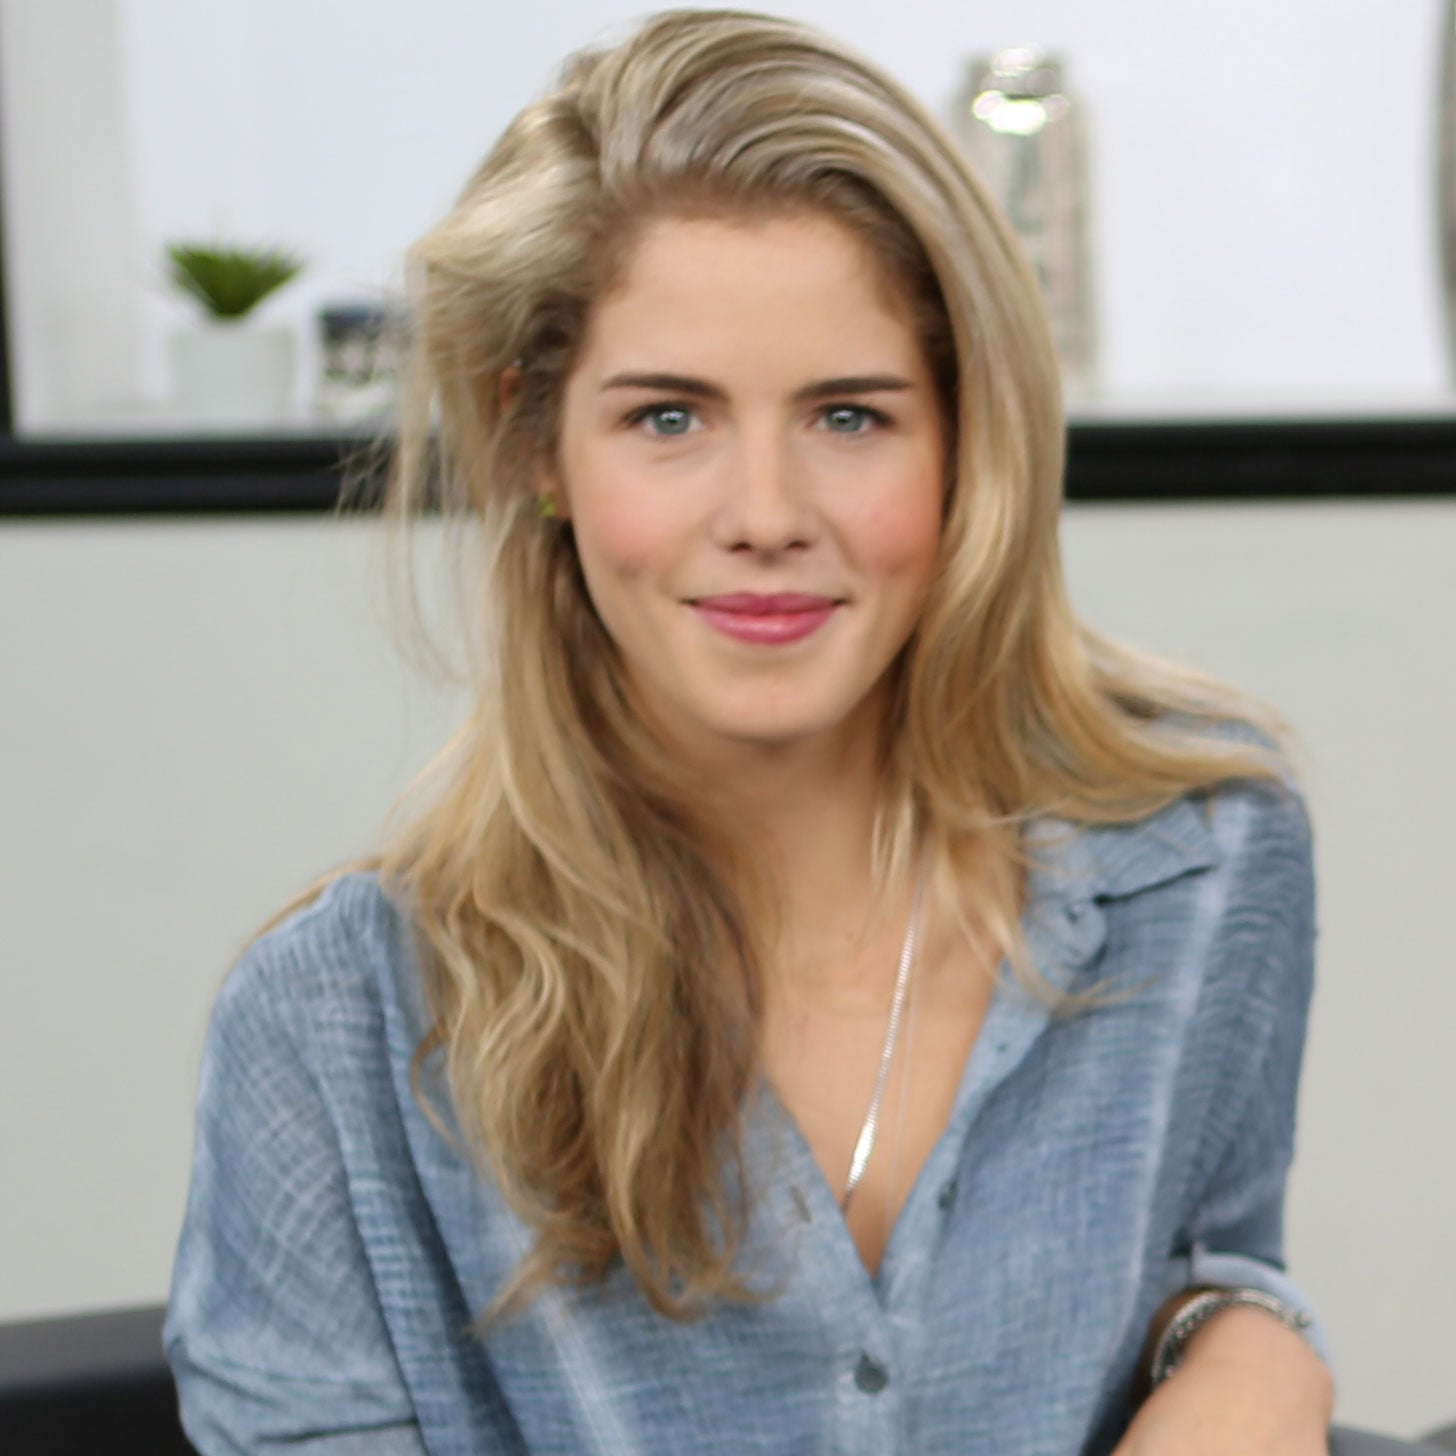 Celebrites Emily Bett Rickards nude (96 photo), Ass, Cleavage, Instagram, legs 2006